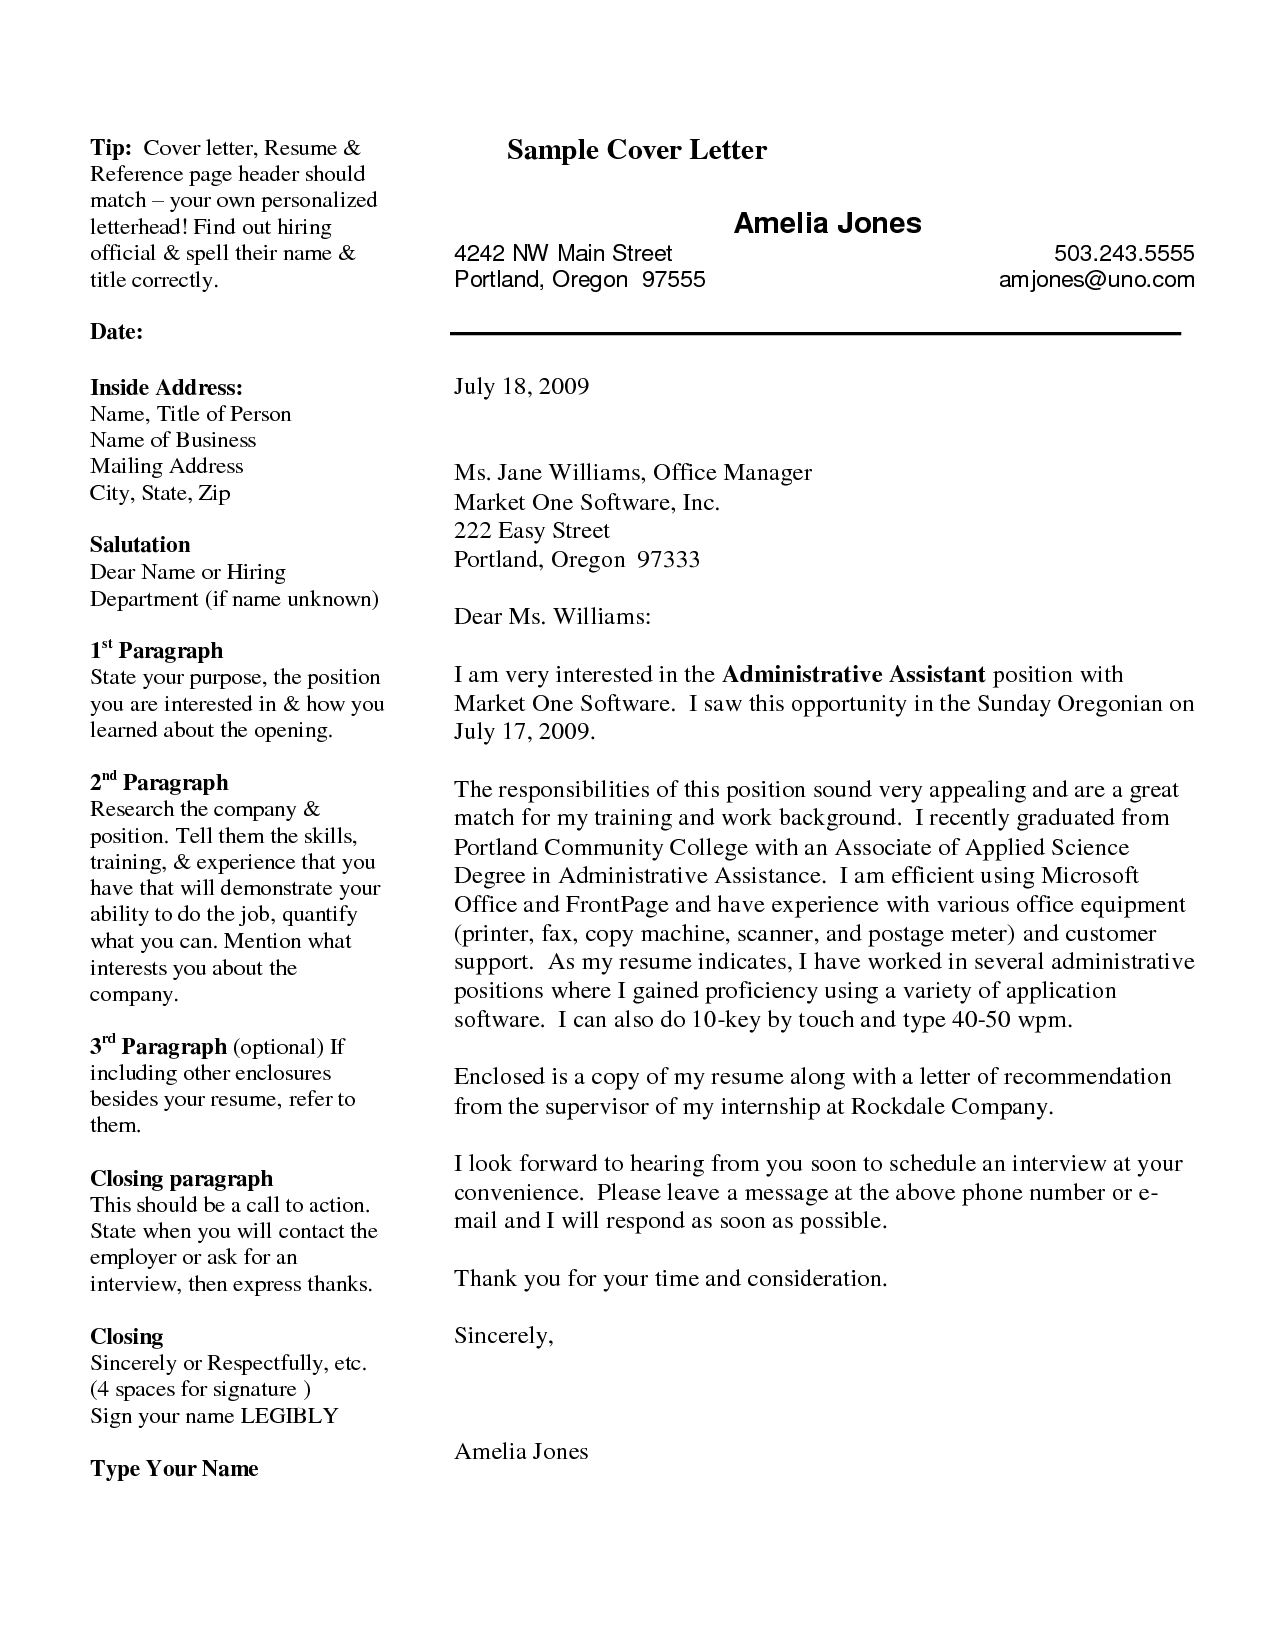 Resume Writing Examples Professional Resume Cover Letter Samplesprofessional Resume Cover